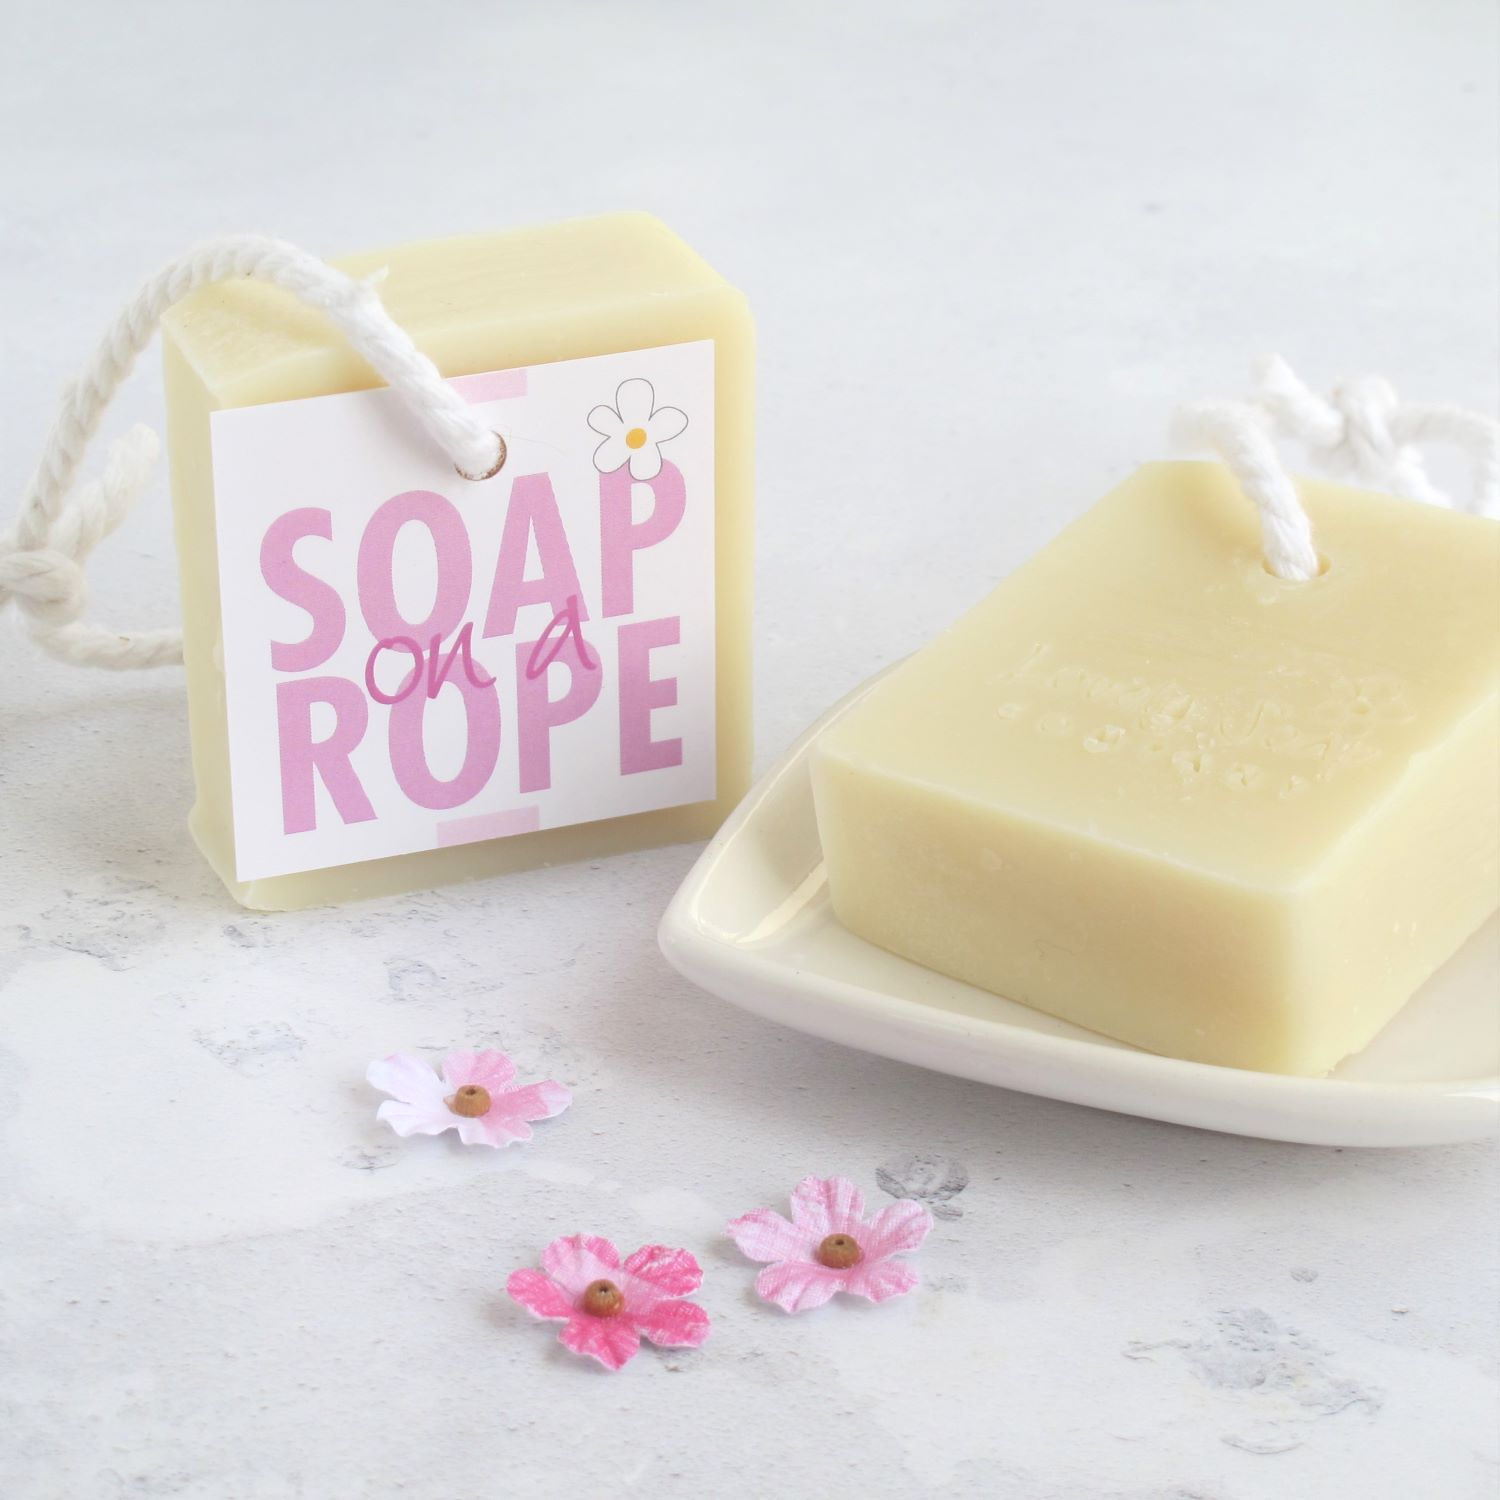 rose geranium soap on a rope handmade by Lovely Soap Co